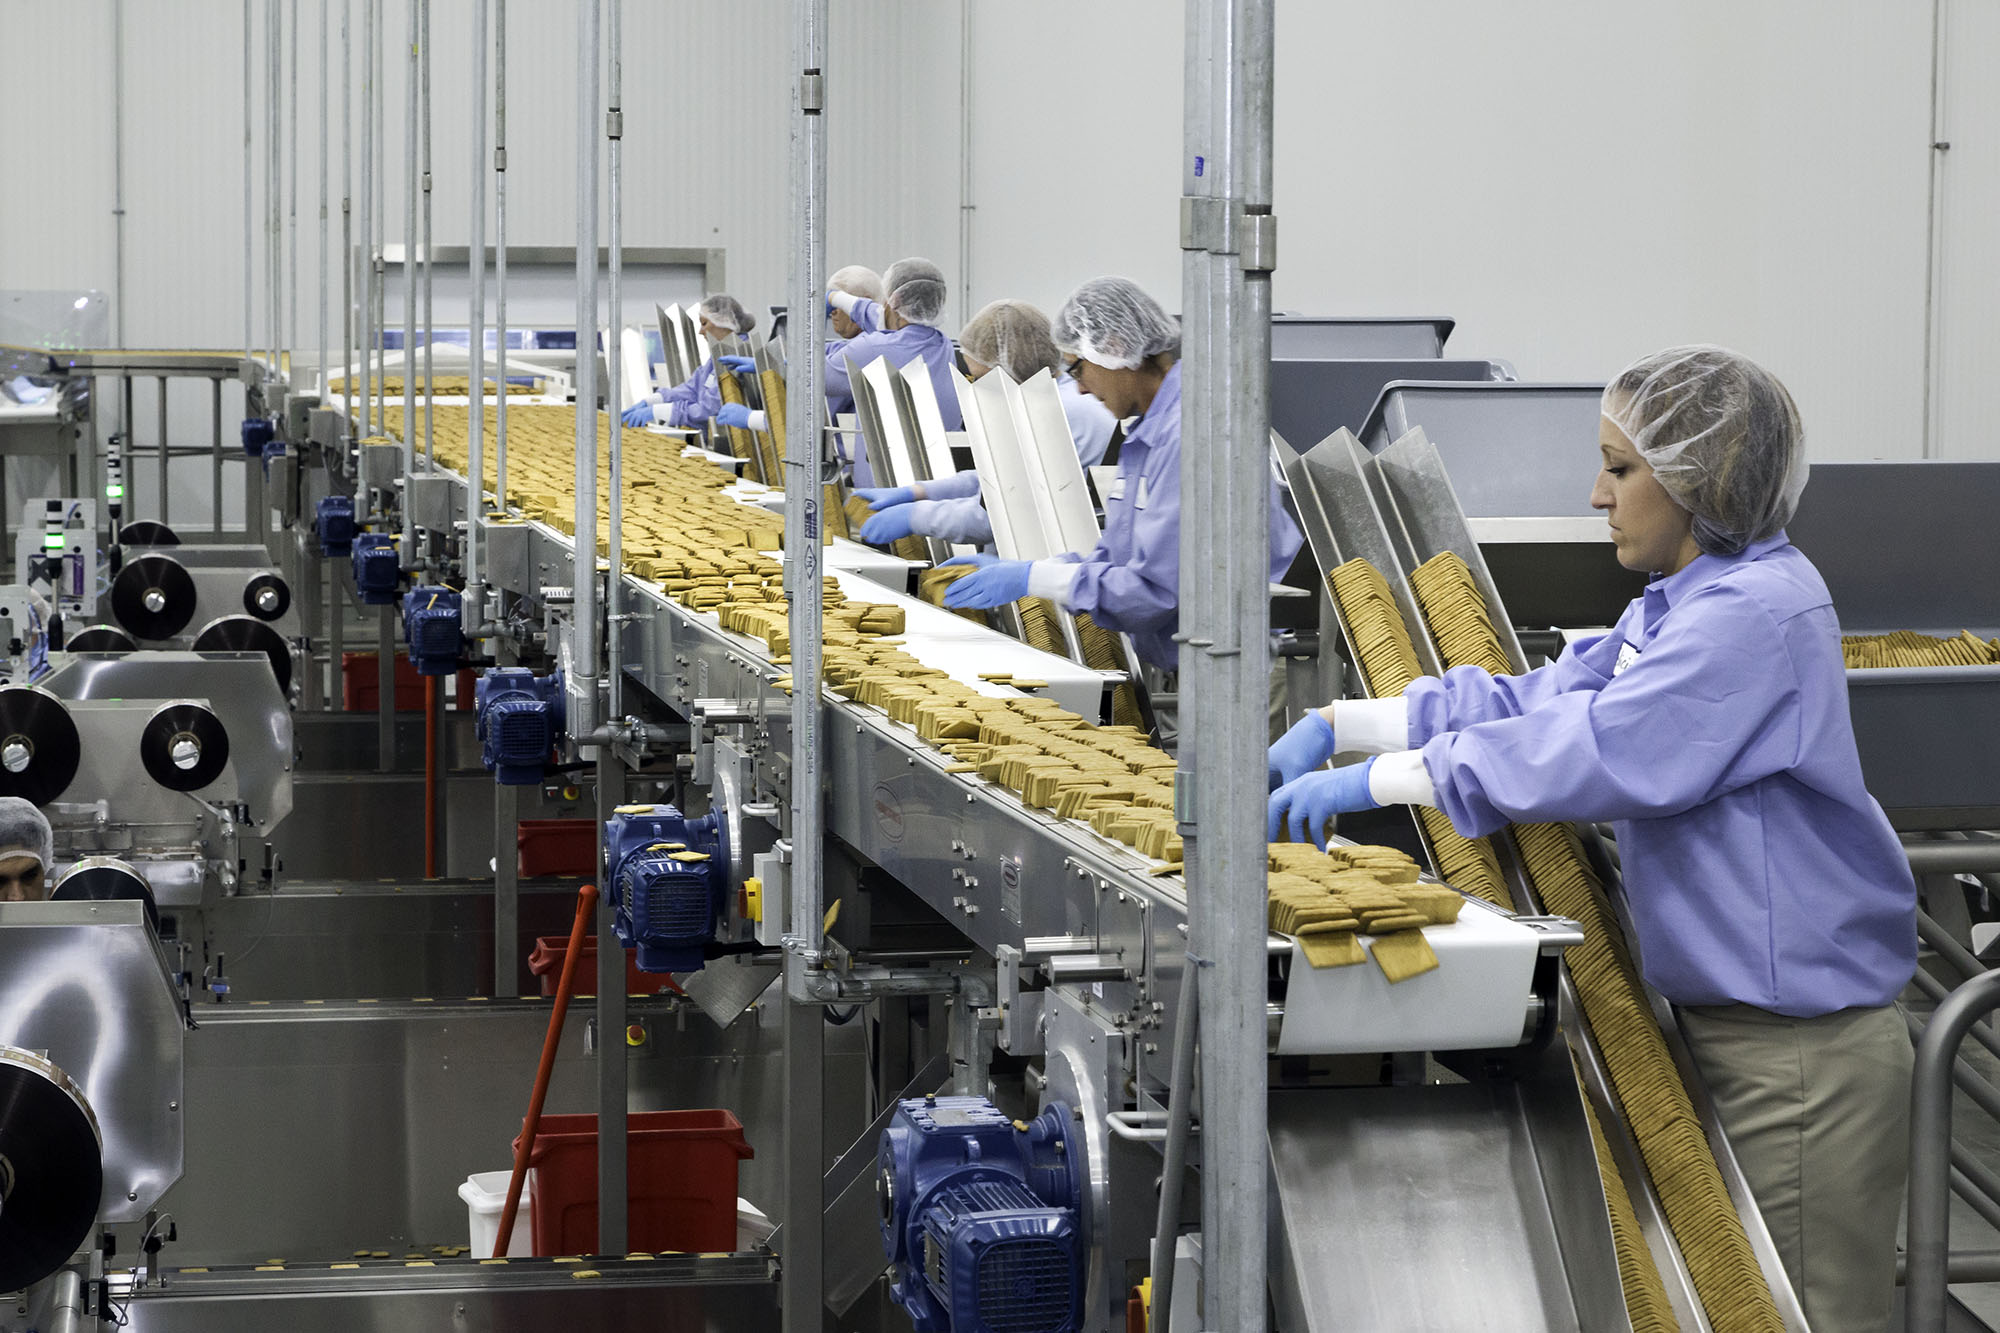 woman tending cracker packaging line at bakery